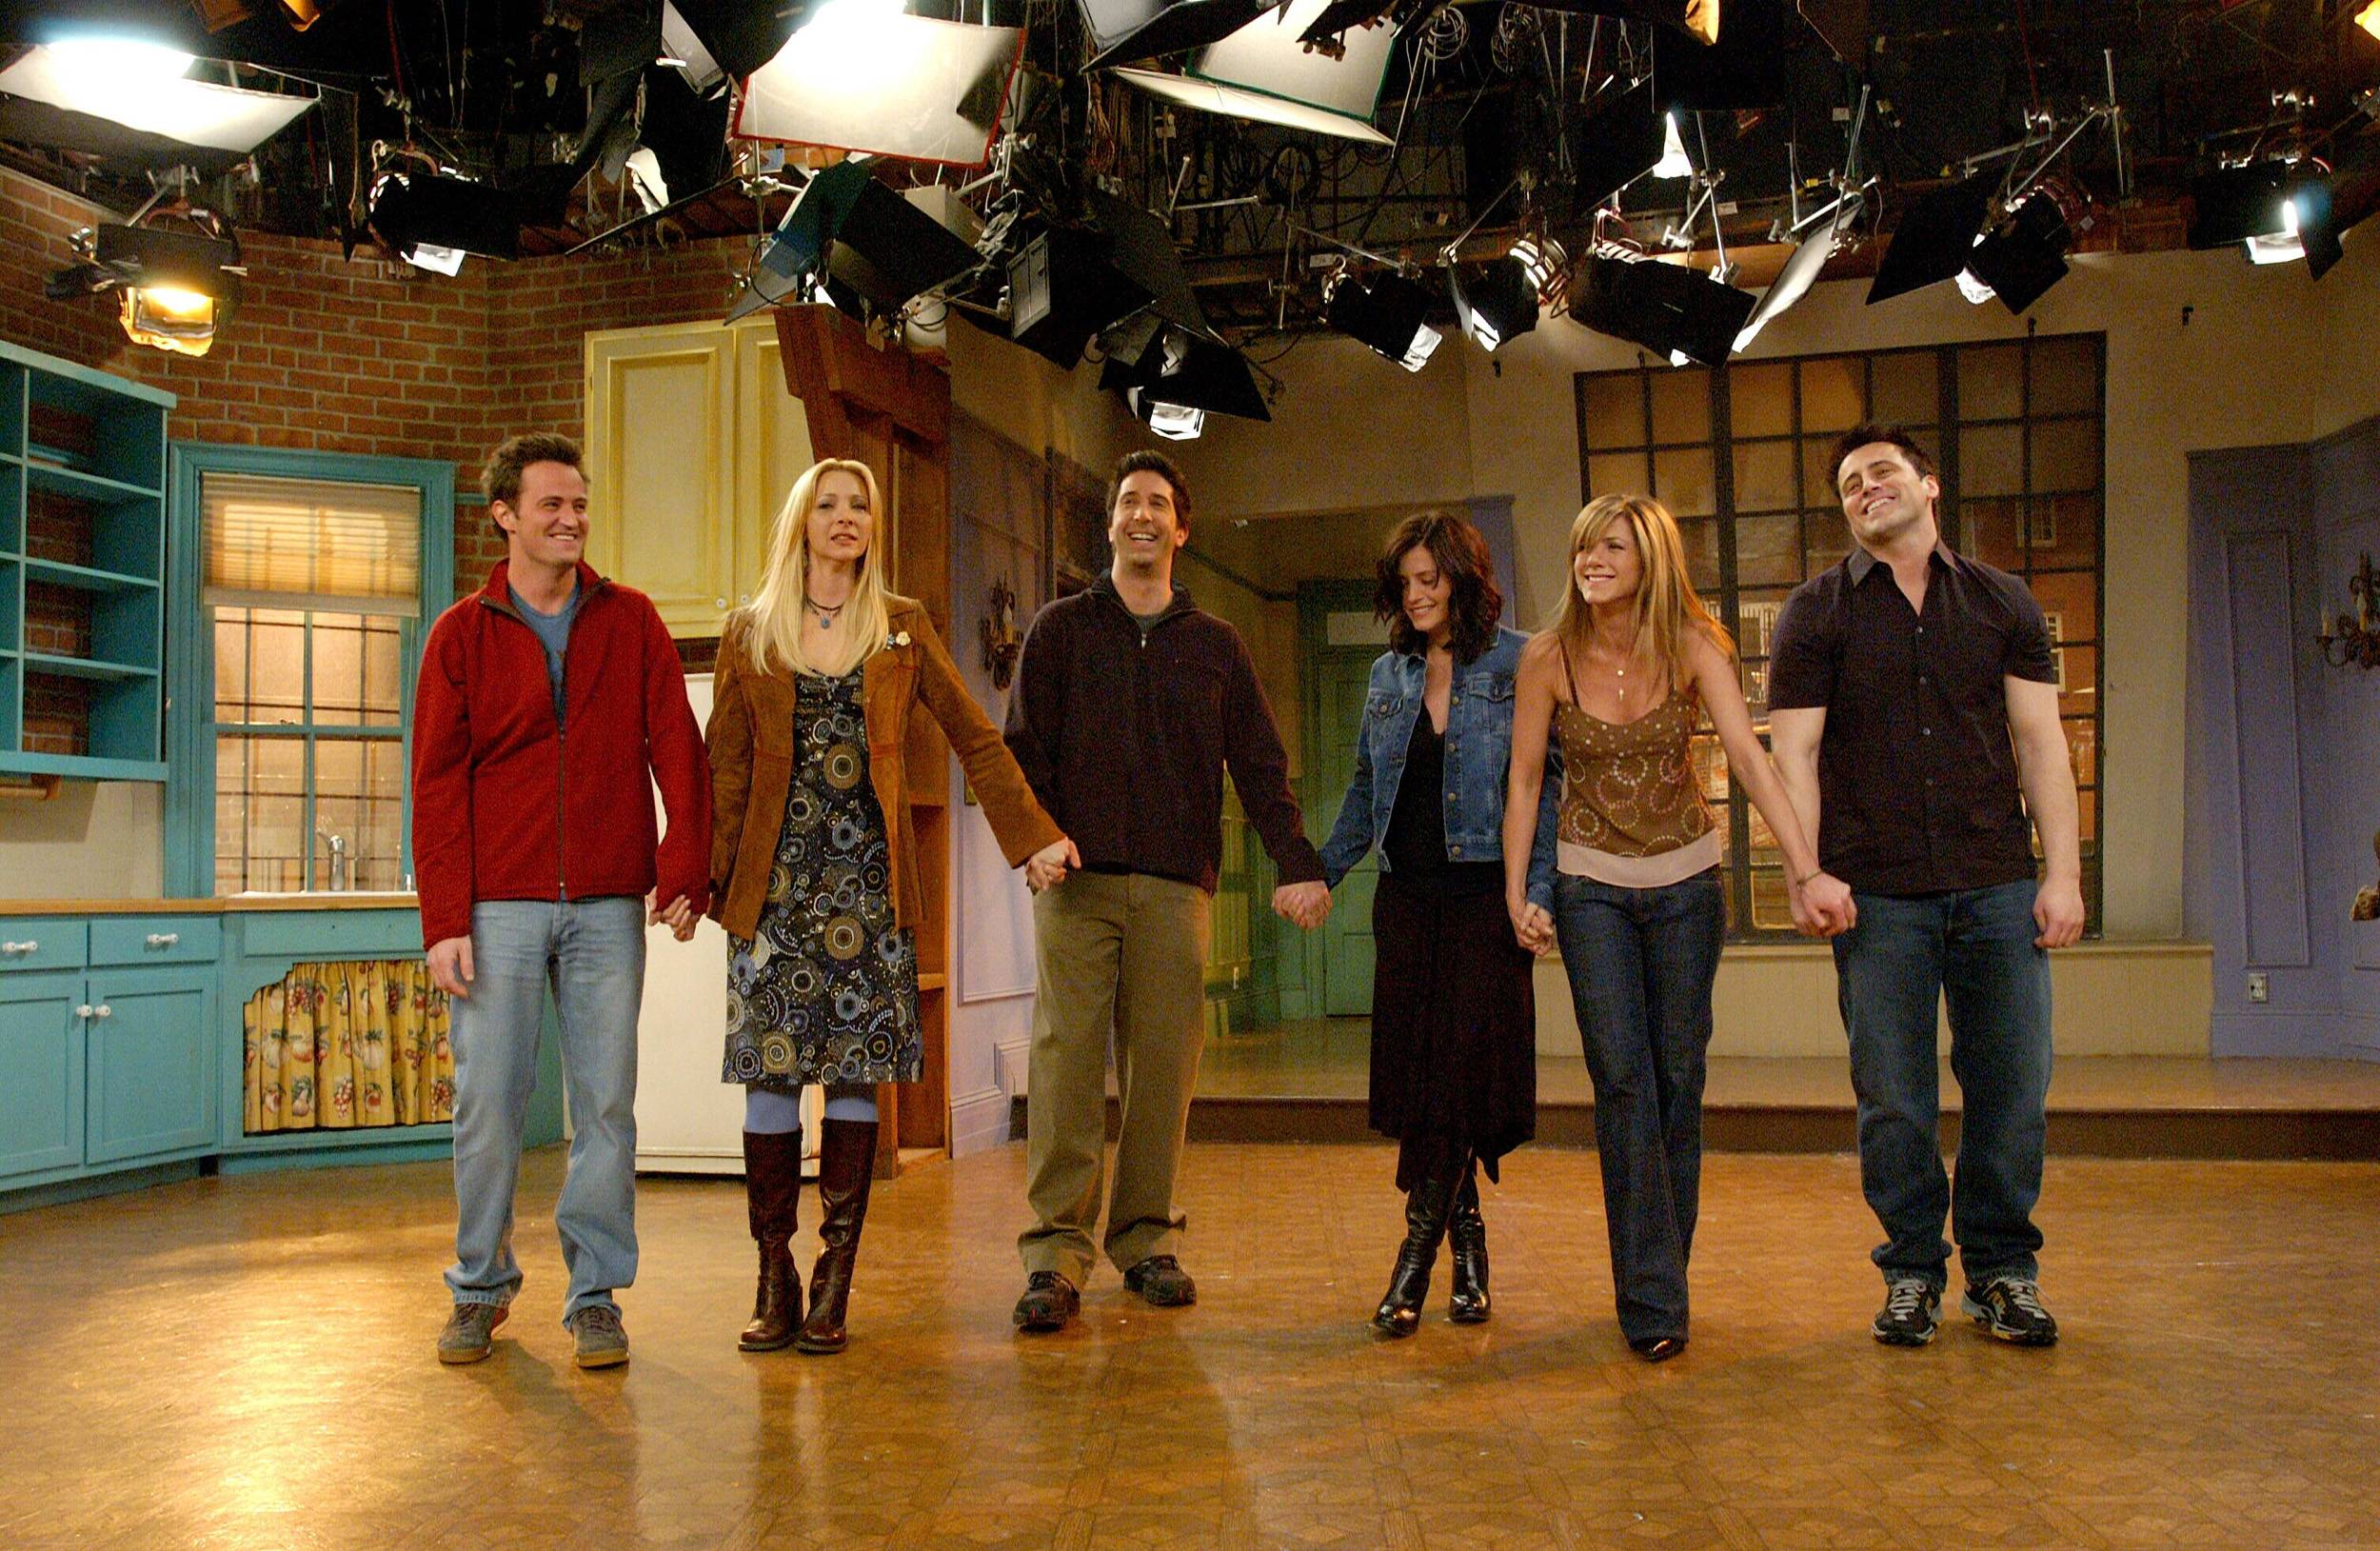 Image For > Friends Tv Show Season 1